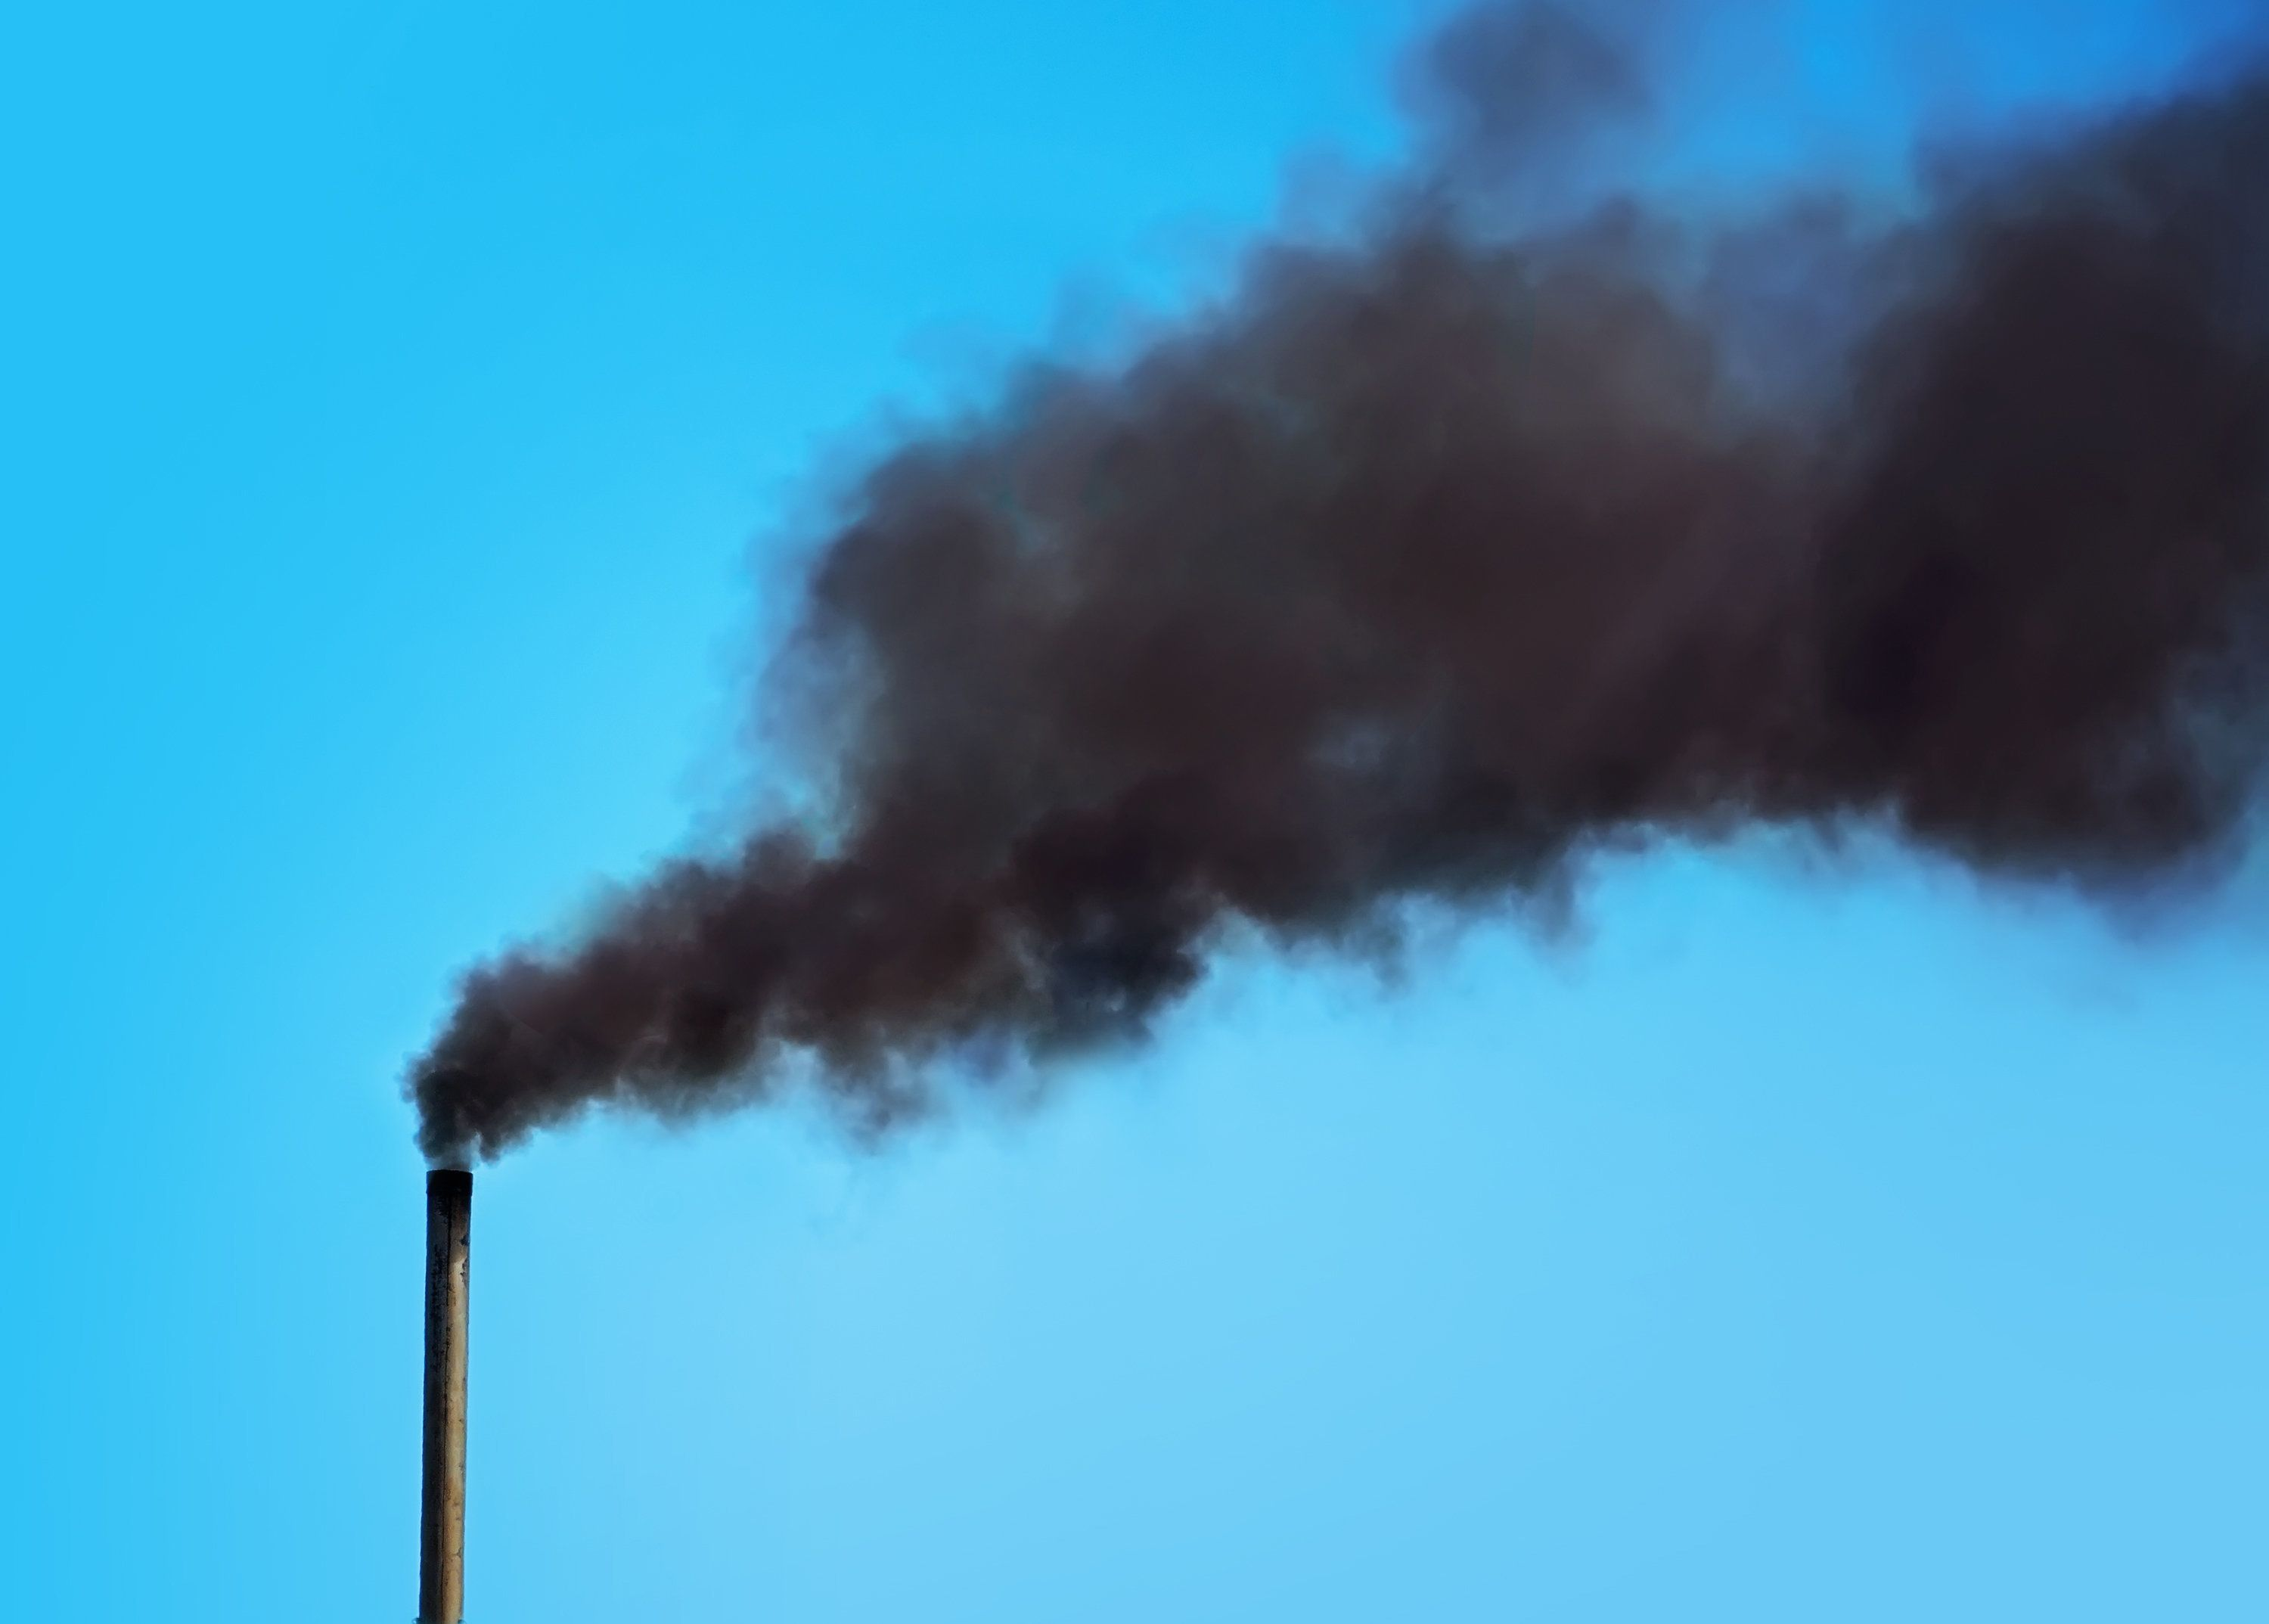 Black pipe with black smoke. Factory chimney smoking, heavy black smoke on the sky. ecology problems